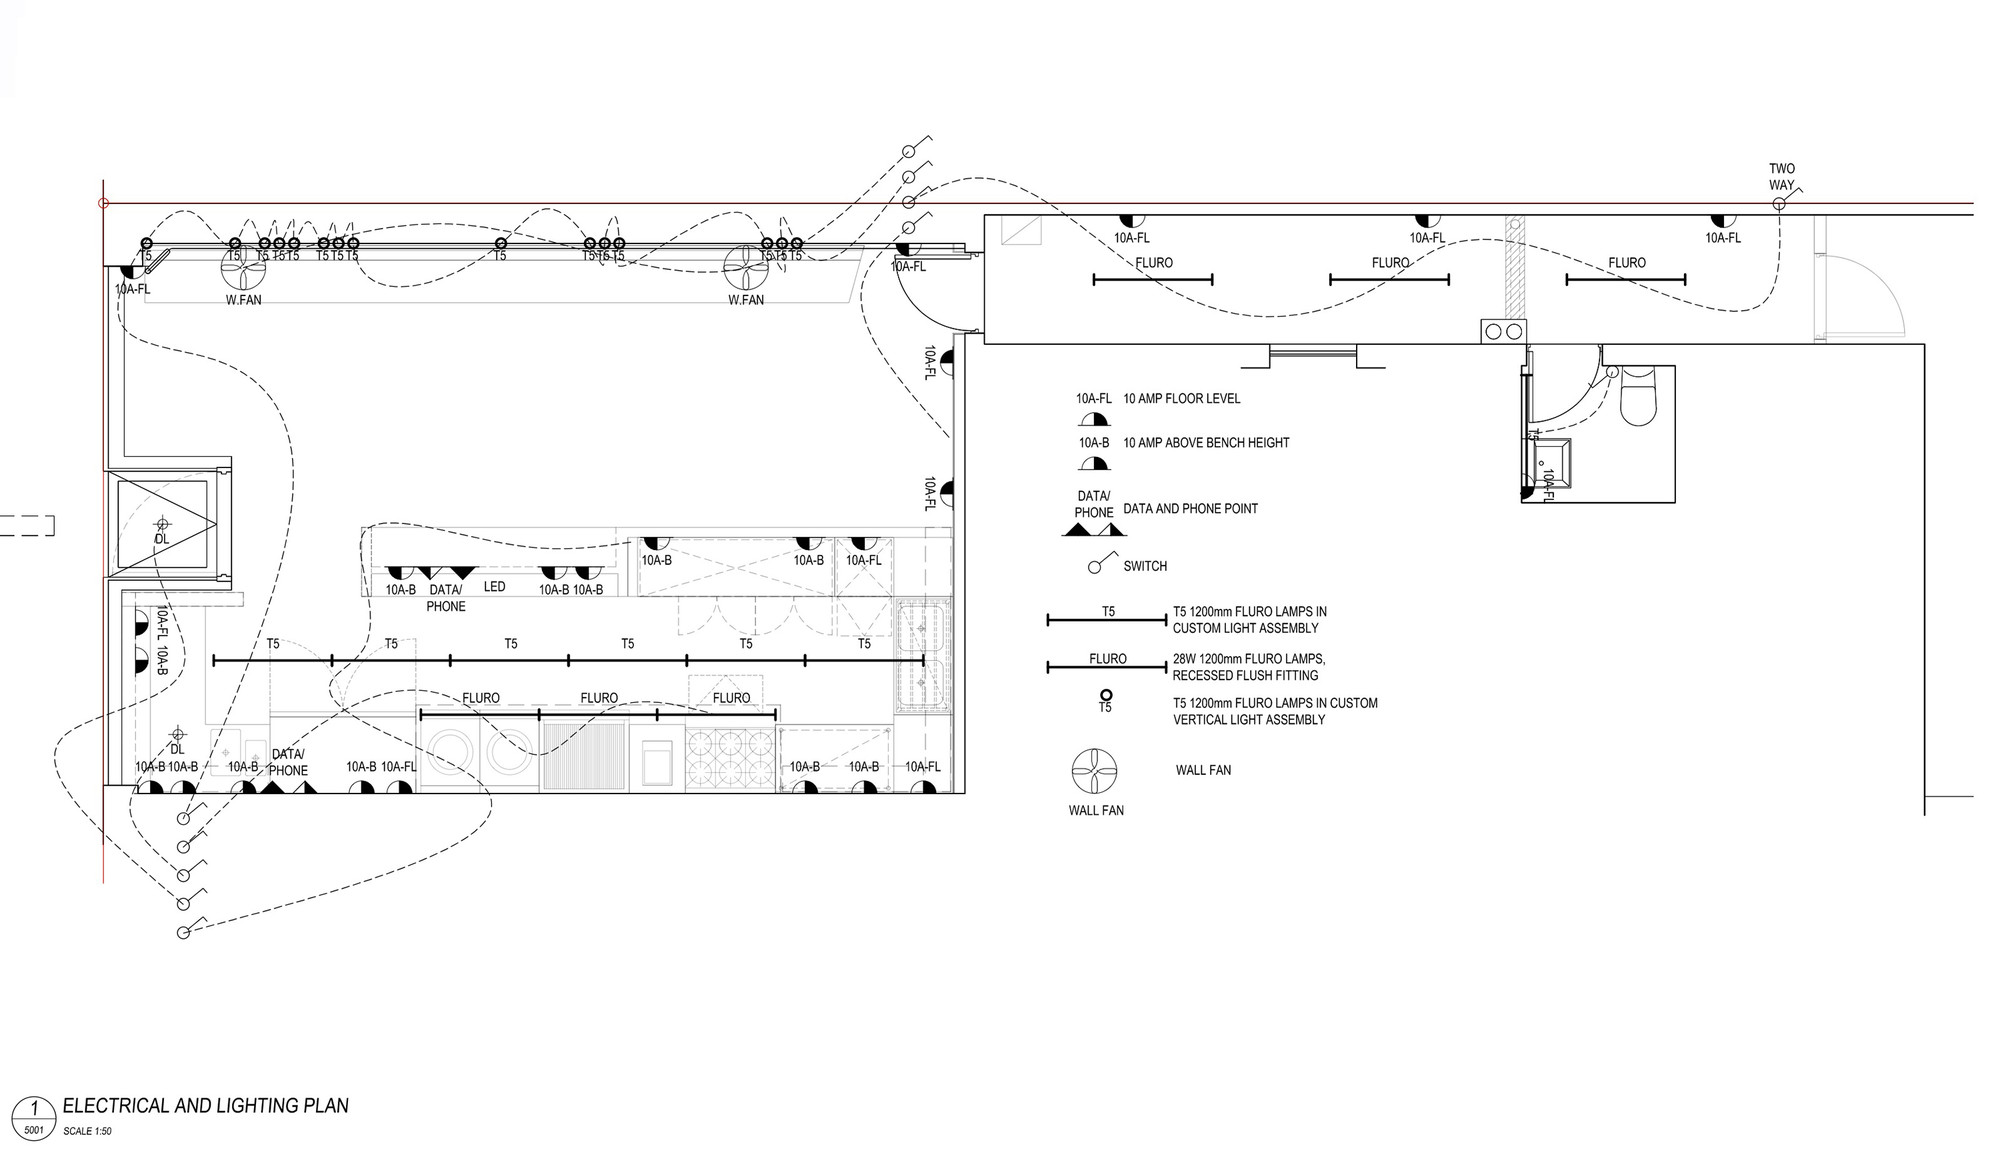 hight resolution of vietnamese restaurant phamily kitchen electrical and lighting plan